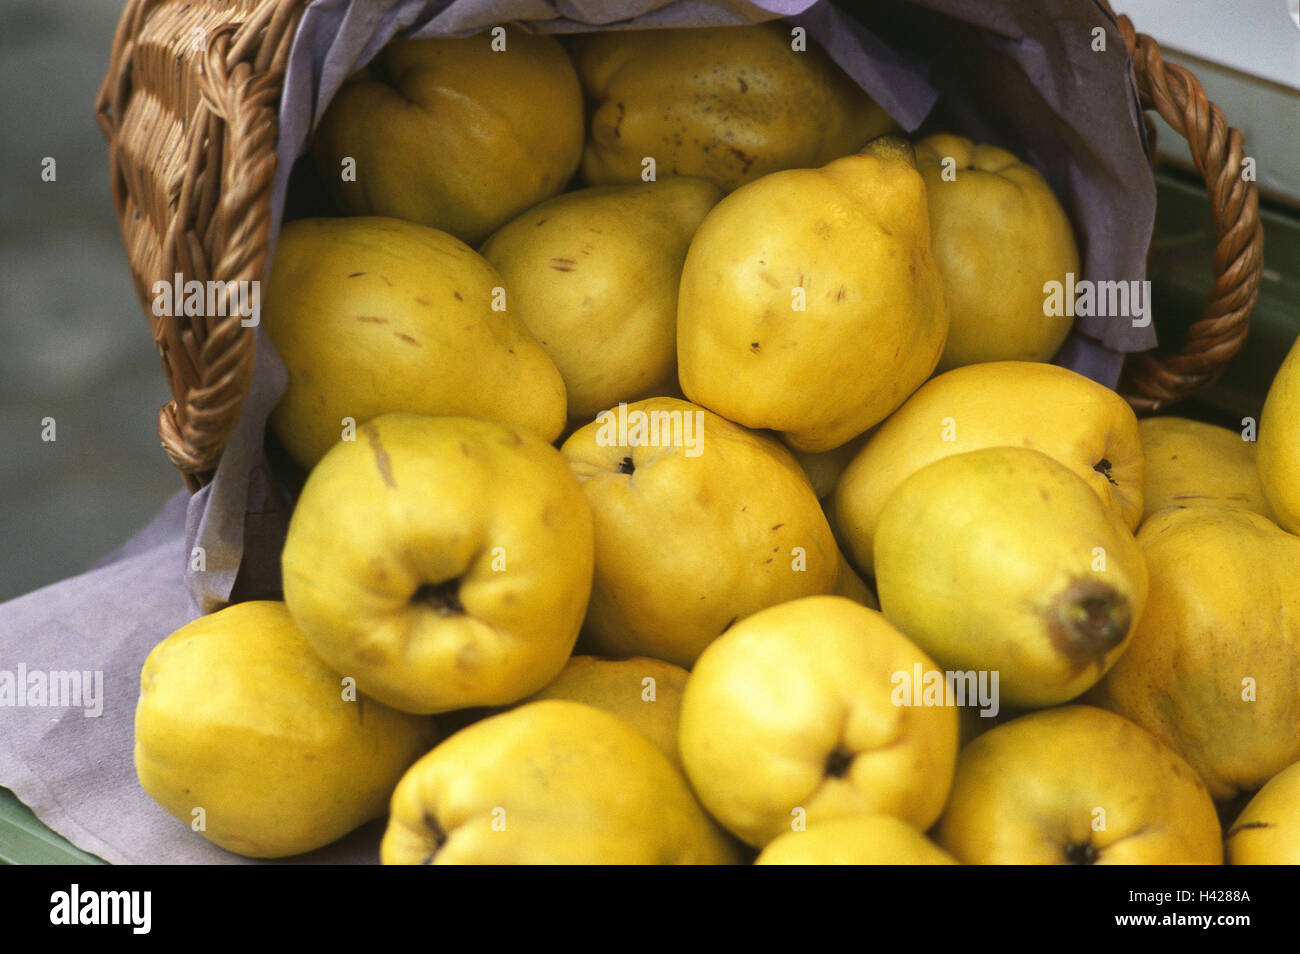 Basket, quinces, Cydonia oblonga, fruit, fruits, autumn fruits, pomes, pear quinces, nutrition healthy, rich in Stock Photo